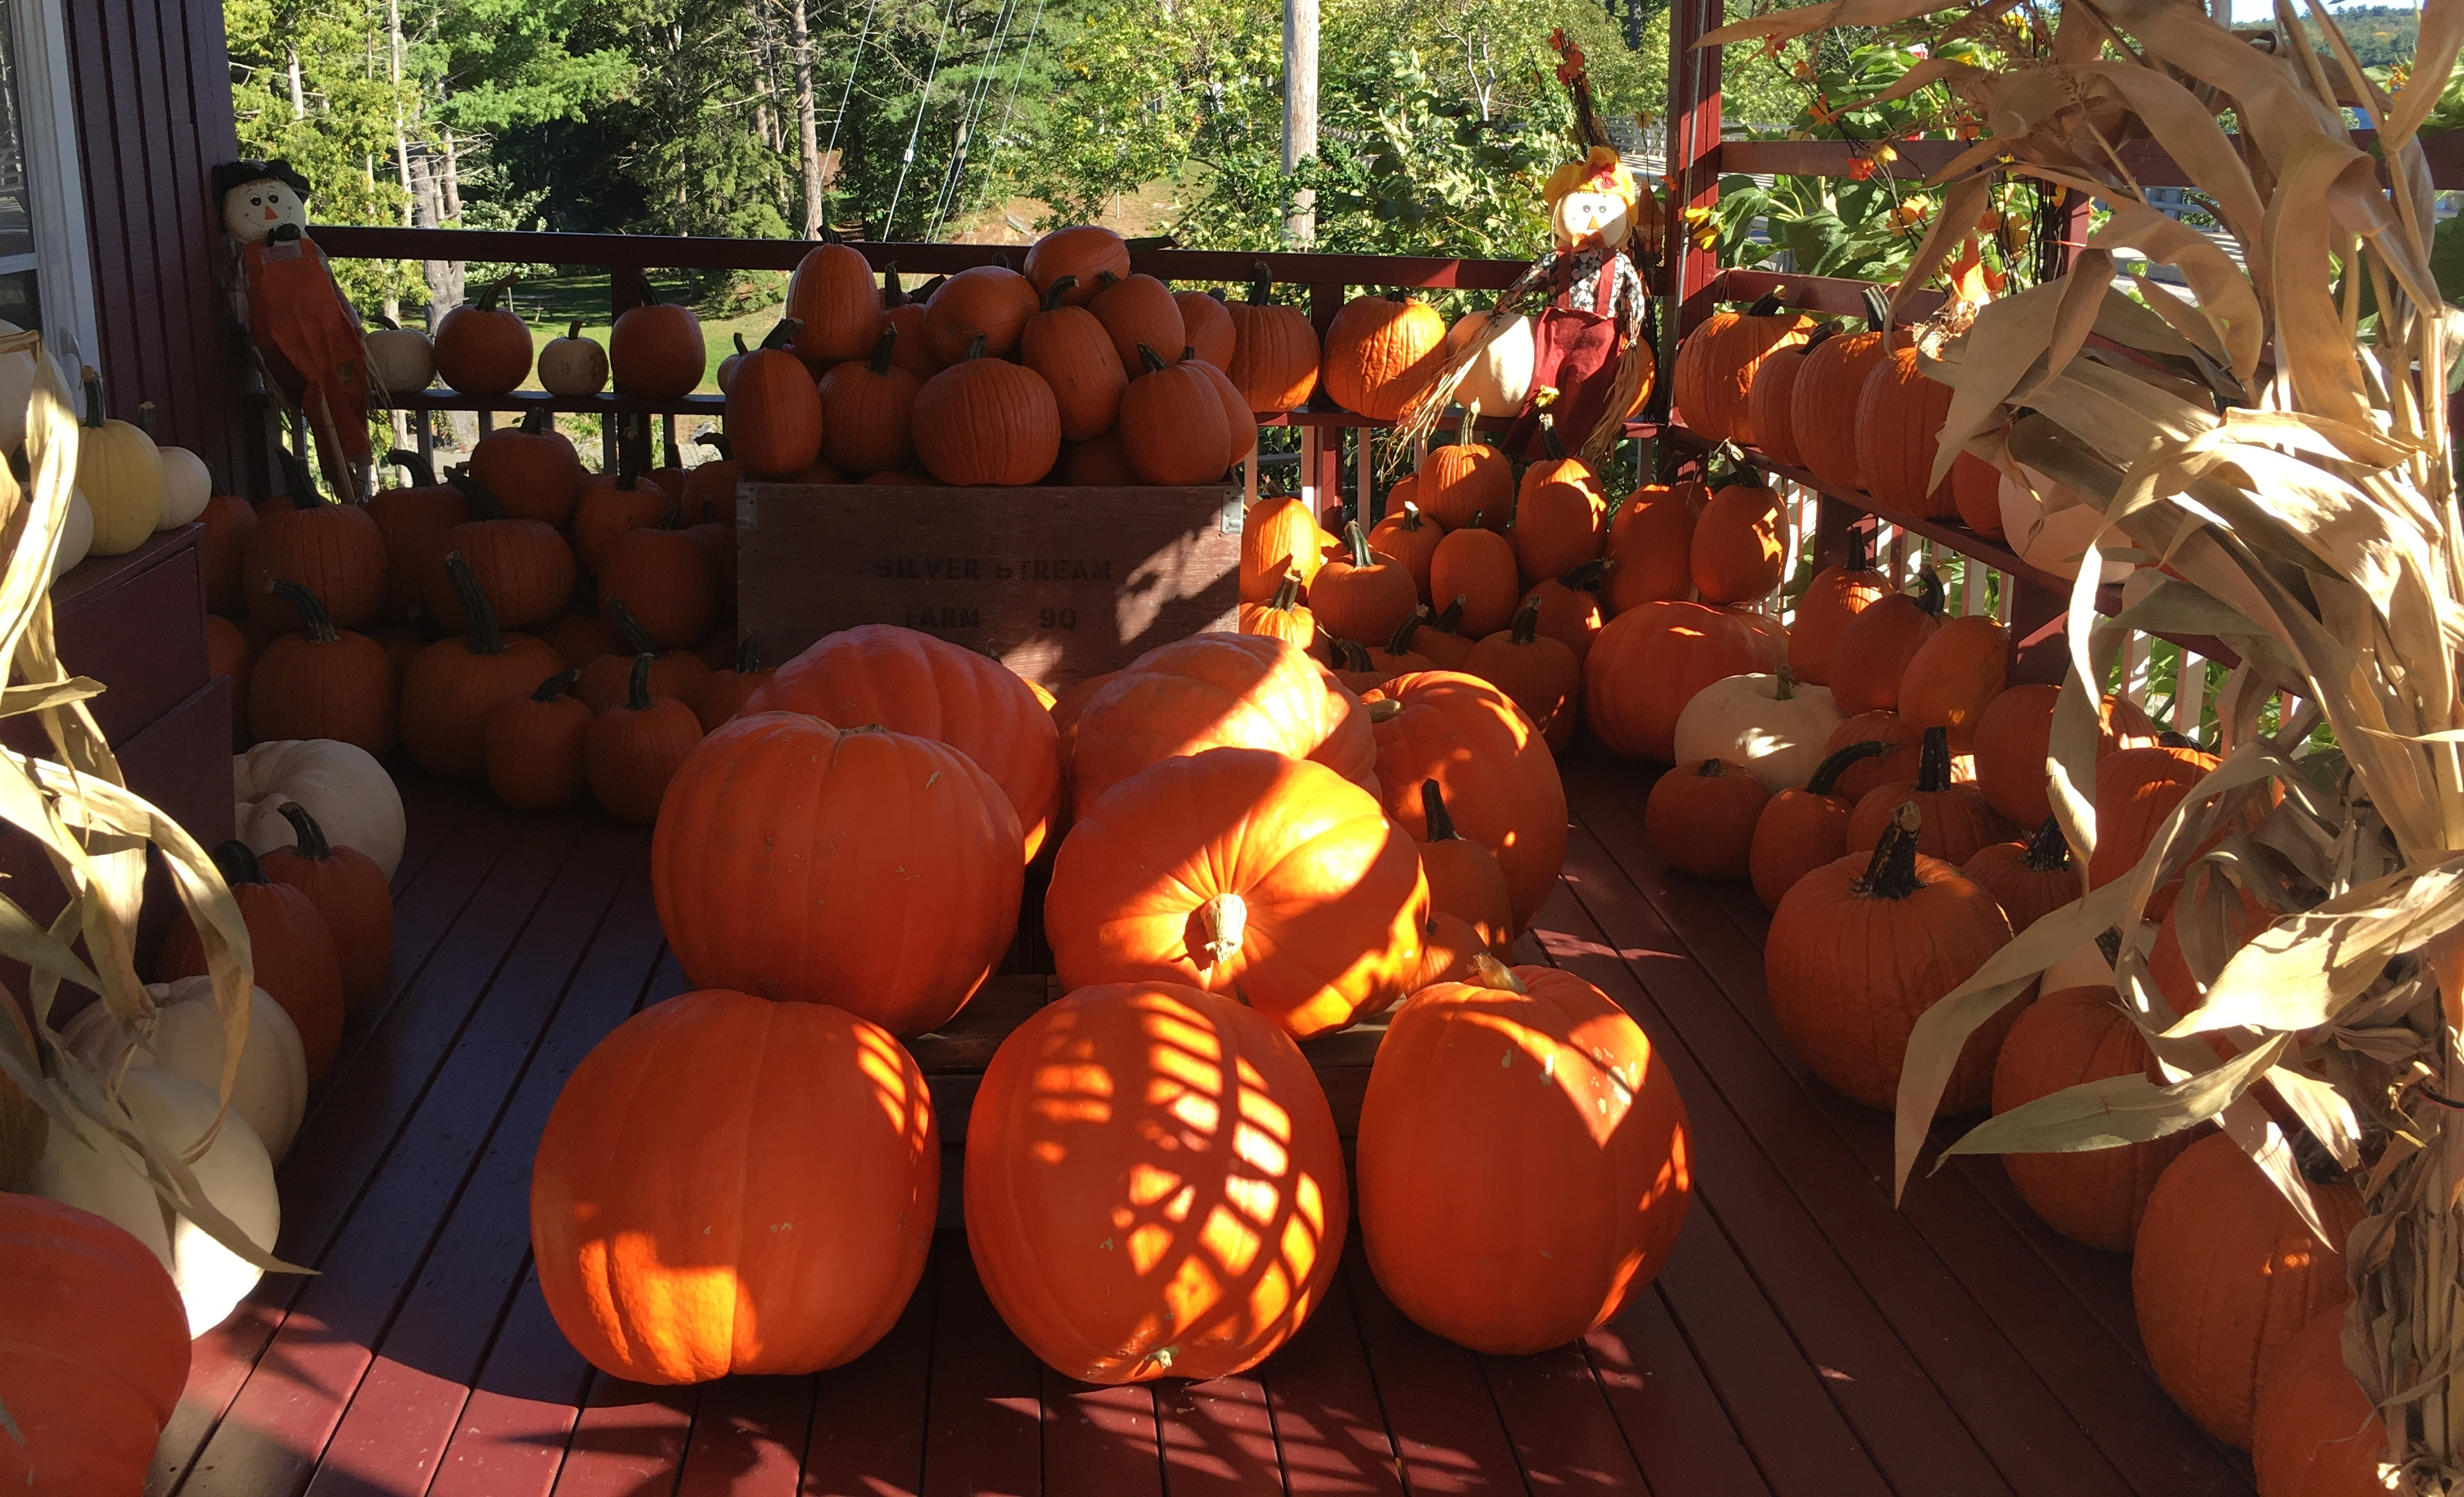 Fall has arrived in Port Sandfield